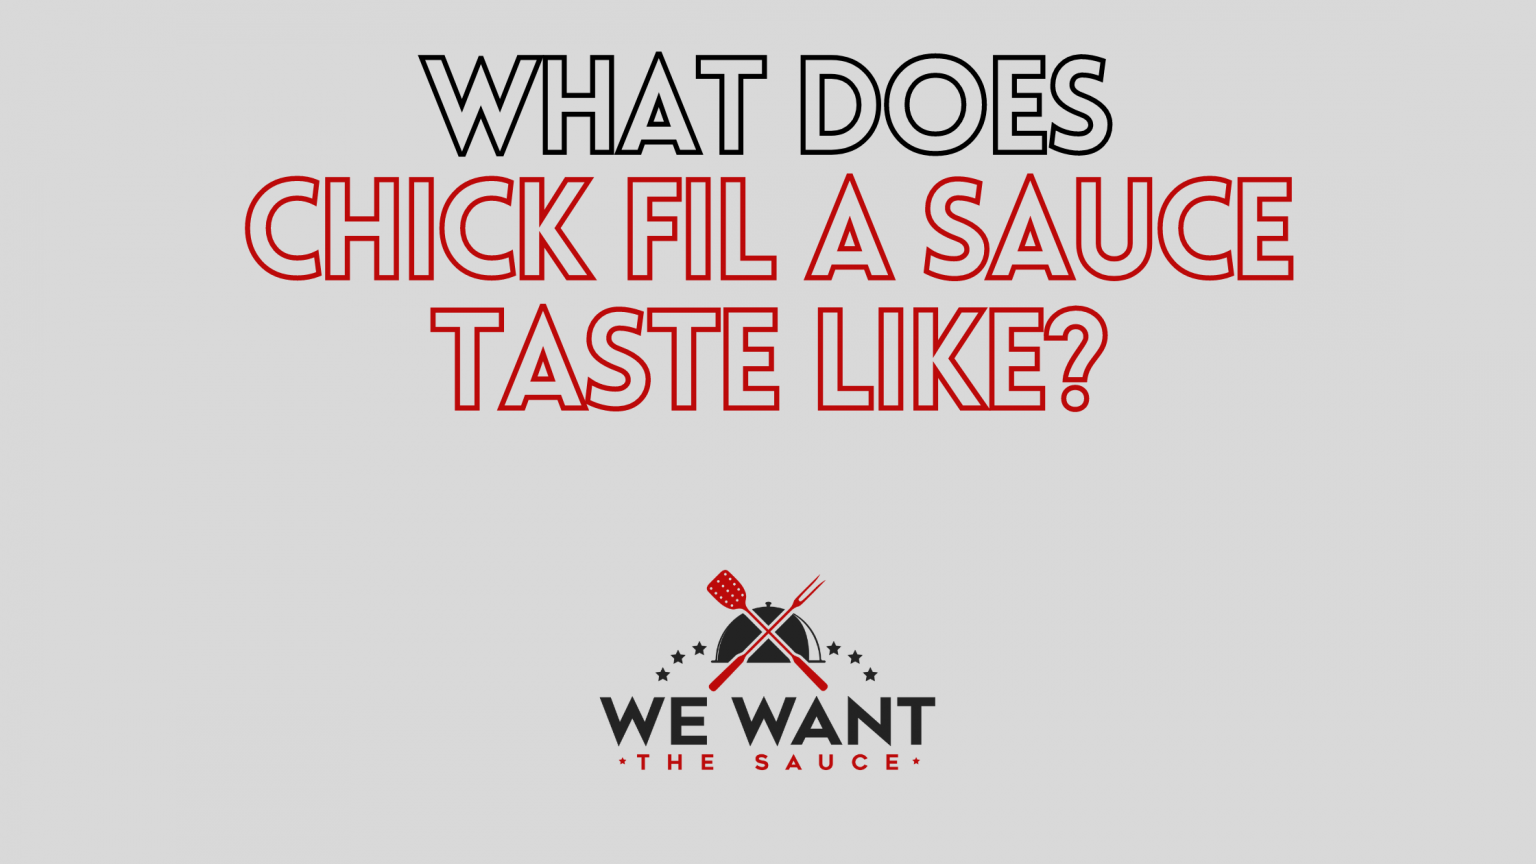 What Does Chick Fil A Sauce Taste Like?